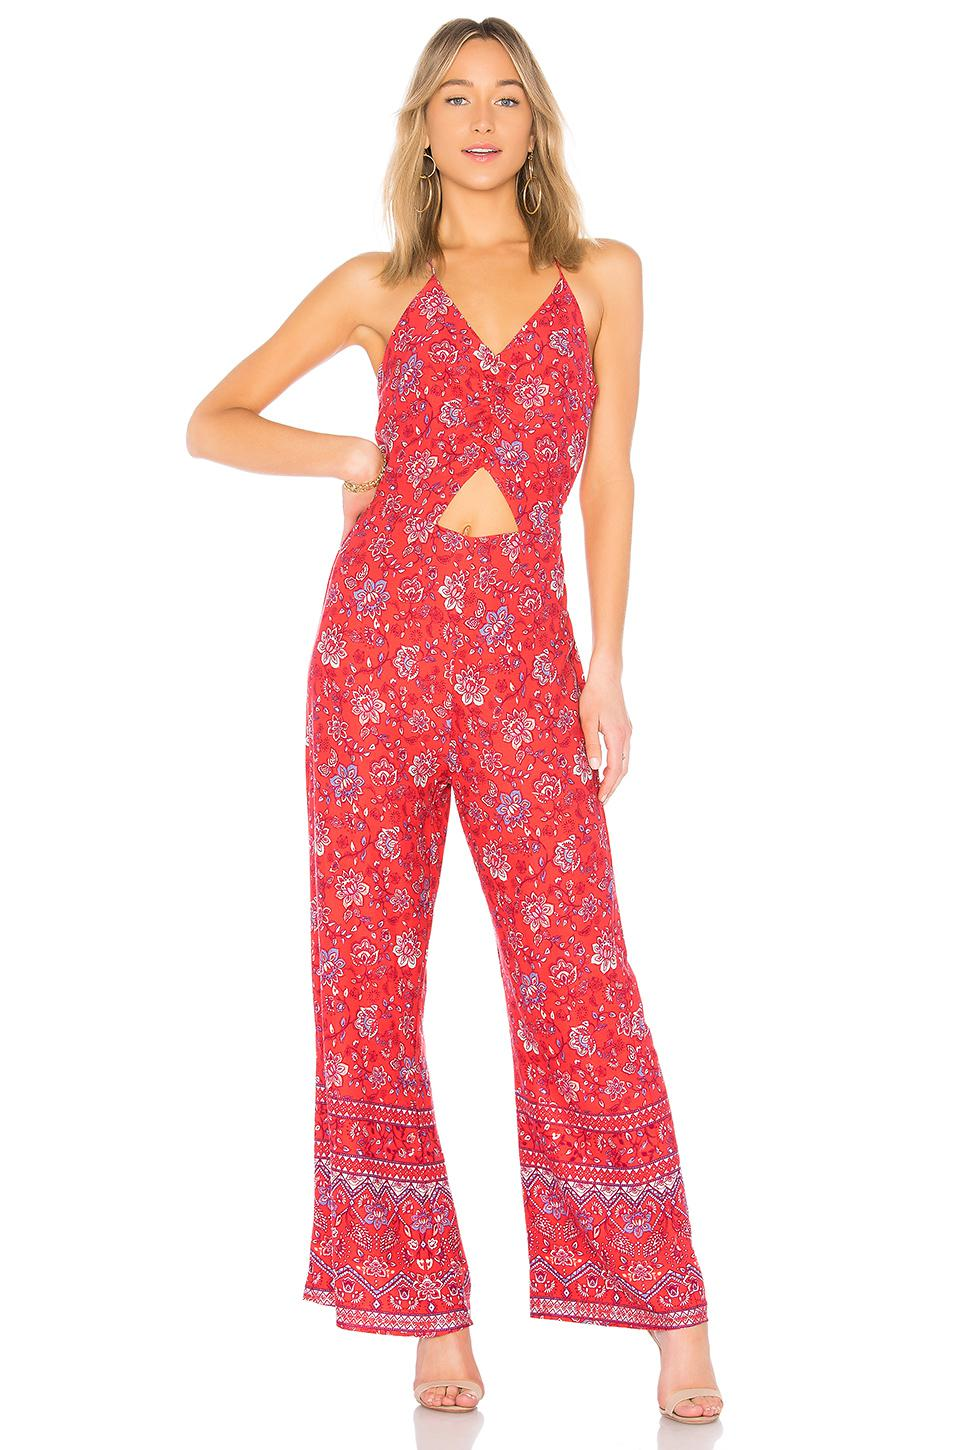 77a7cd70b13 Lyst - MINKPINK Lucia Halterneck Jumpsuit in Red - Save ...